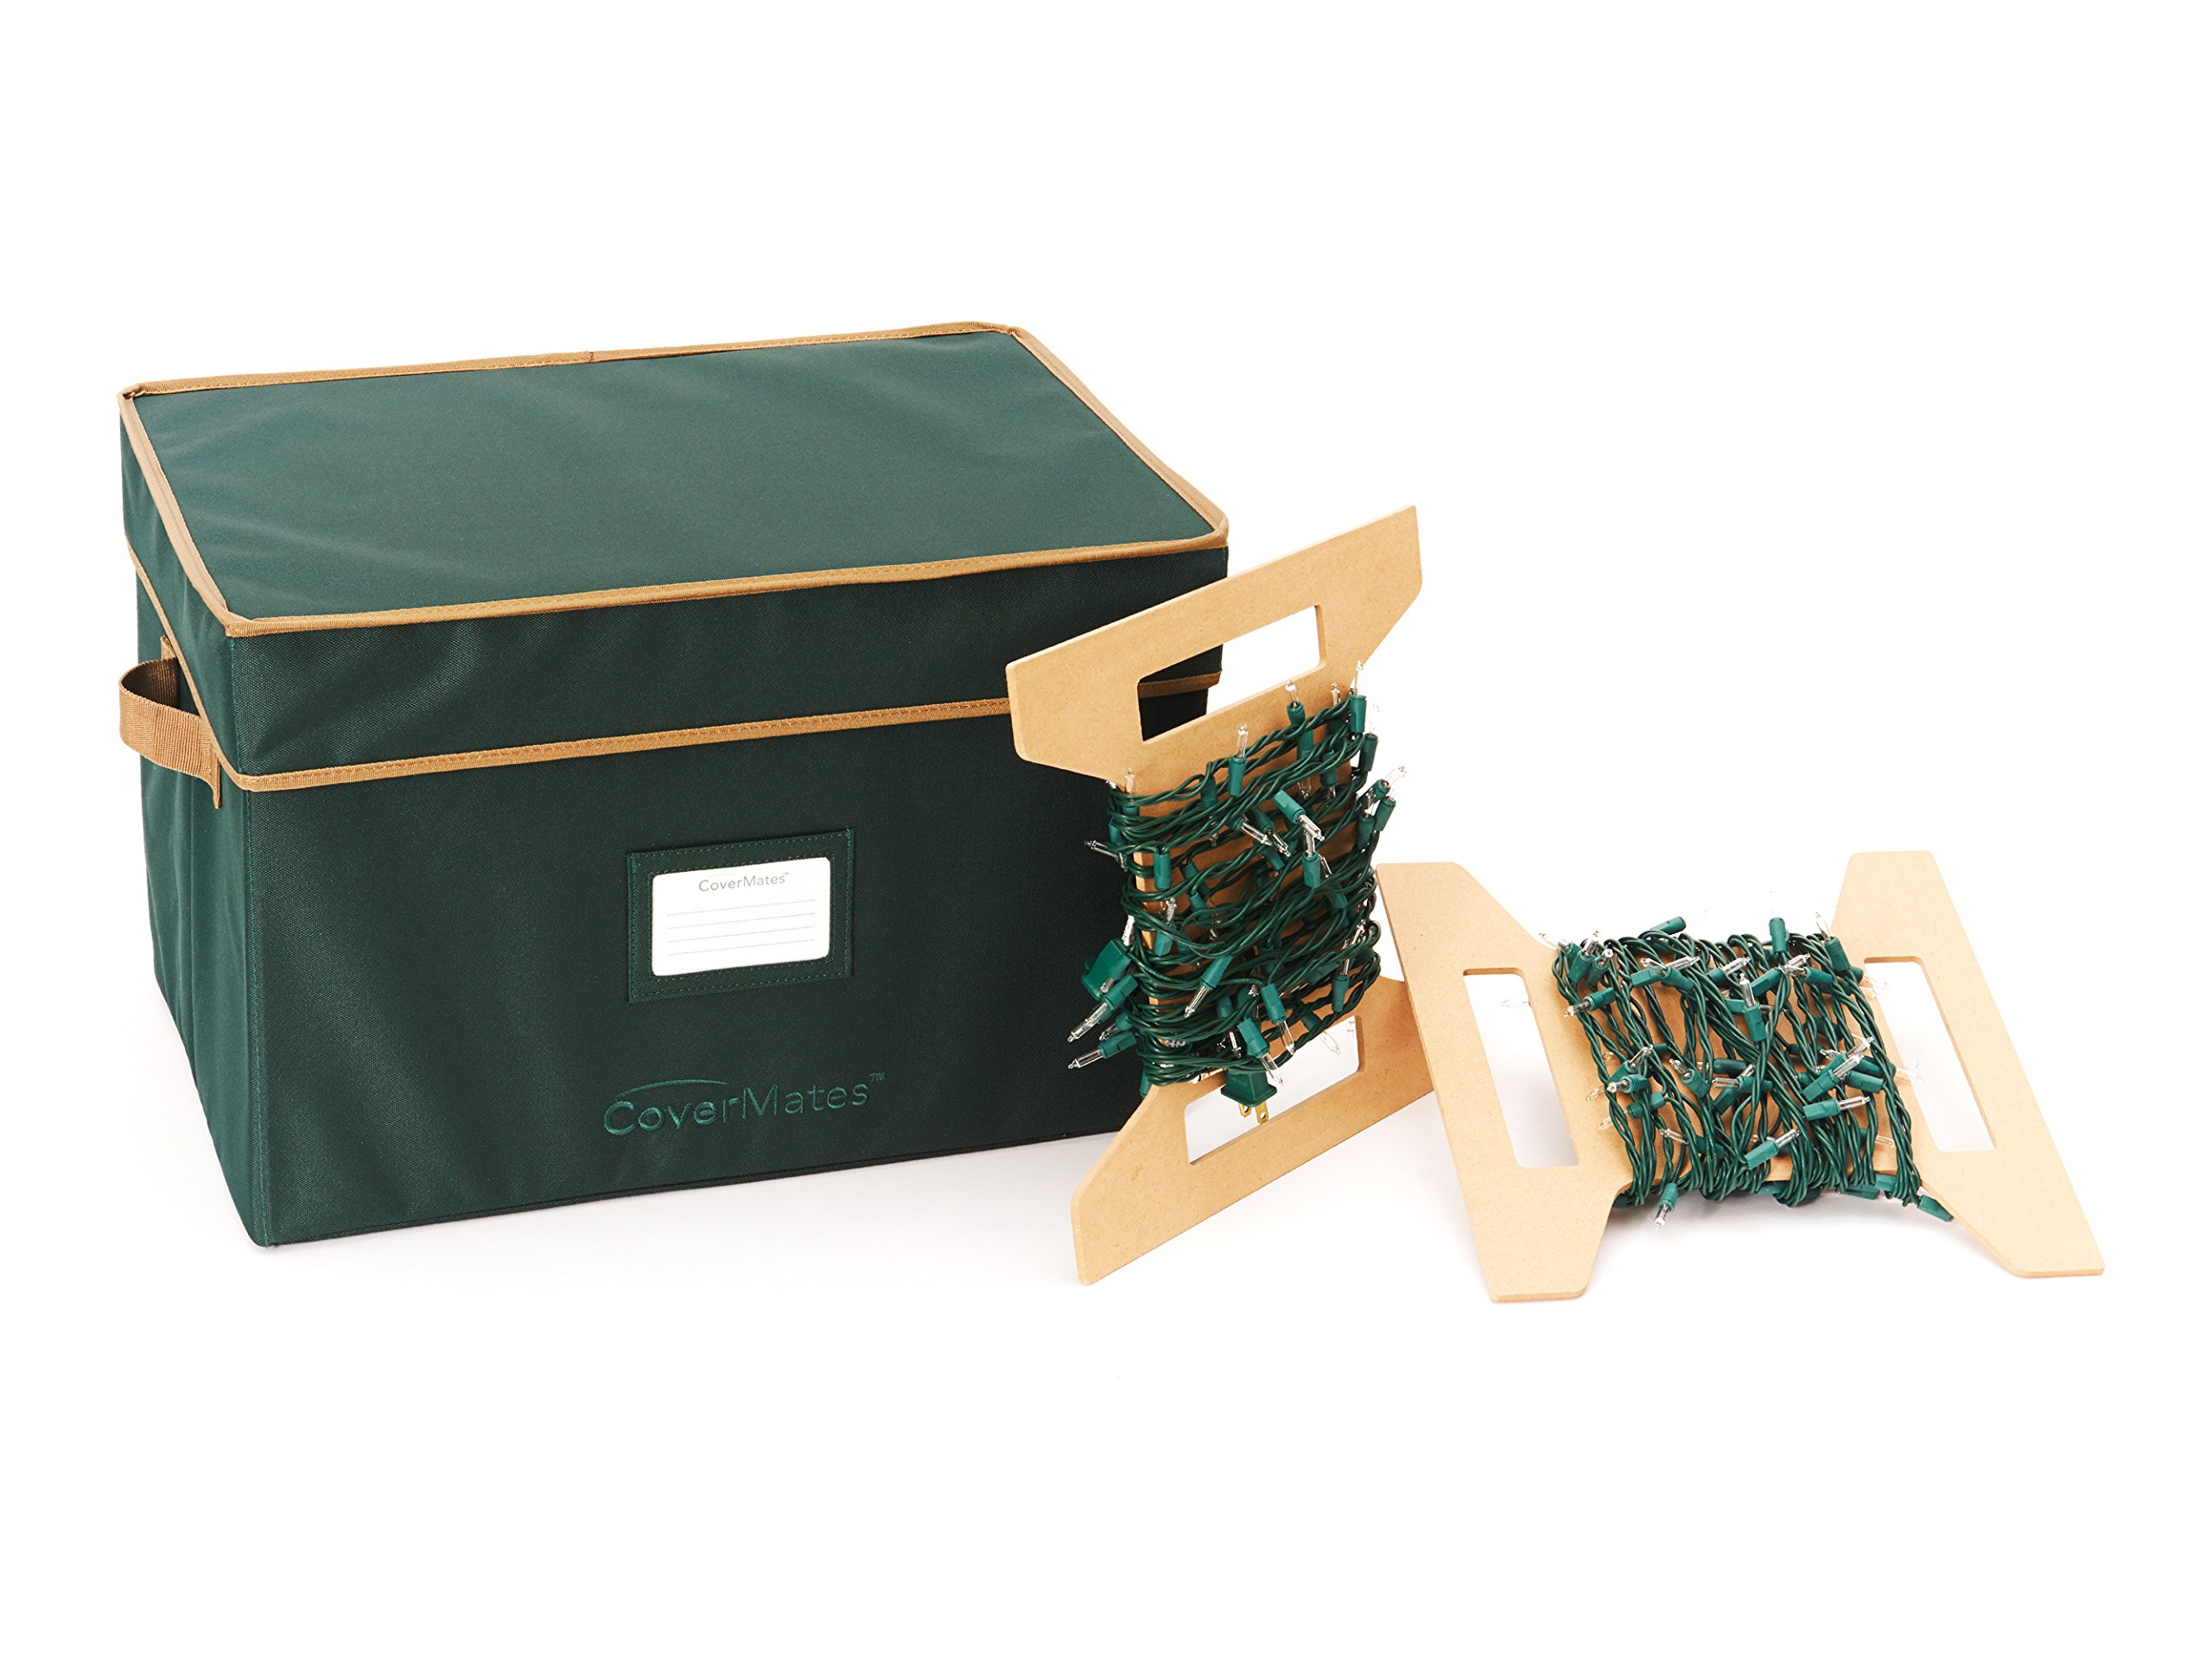 CoverMates – 18'' Holiday LightKeeper Storage Box – 3 Year Warranty- Green